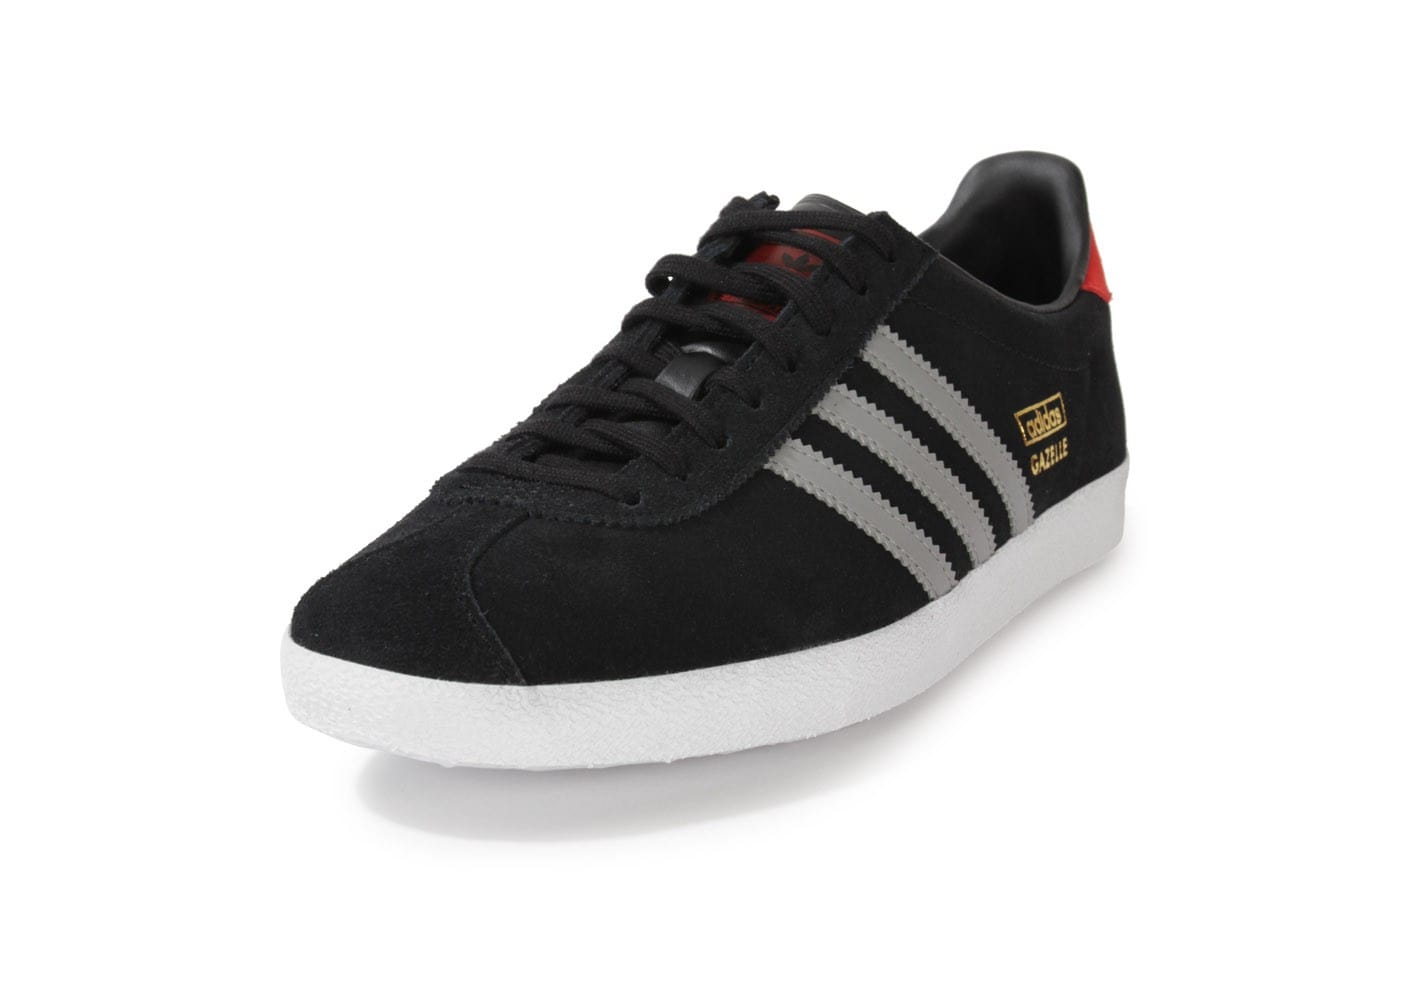 adidas gazelle og noire et grise chaussures baskets homme chausport. Black Bedroom Furniture Sets. Home Design Ideas